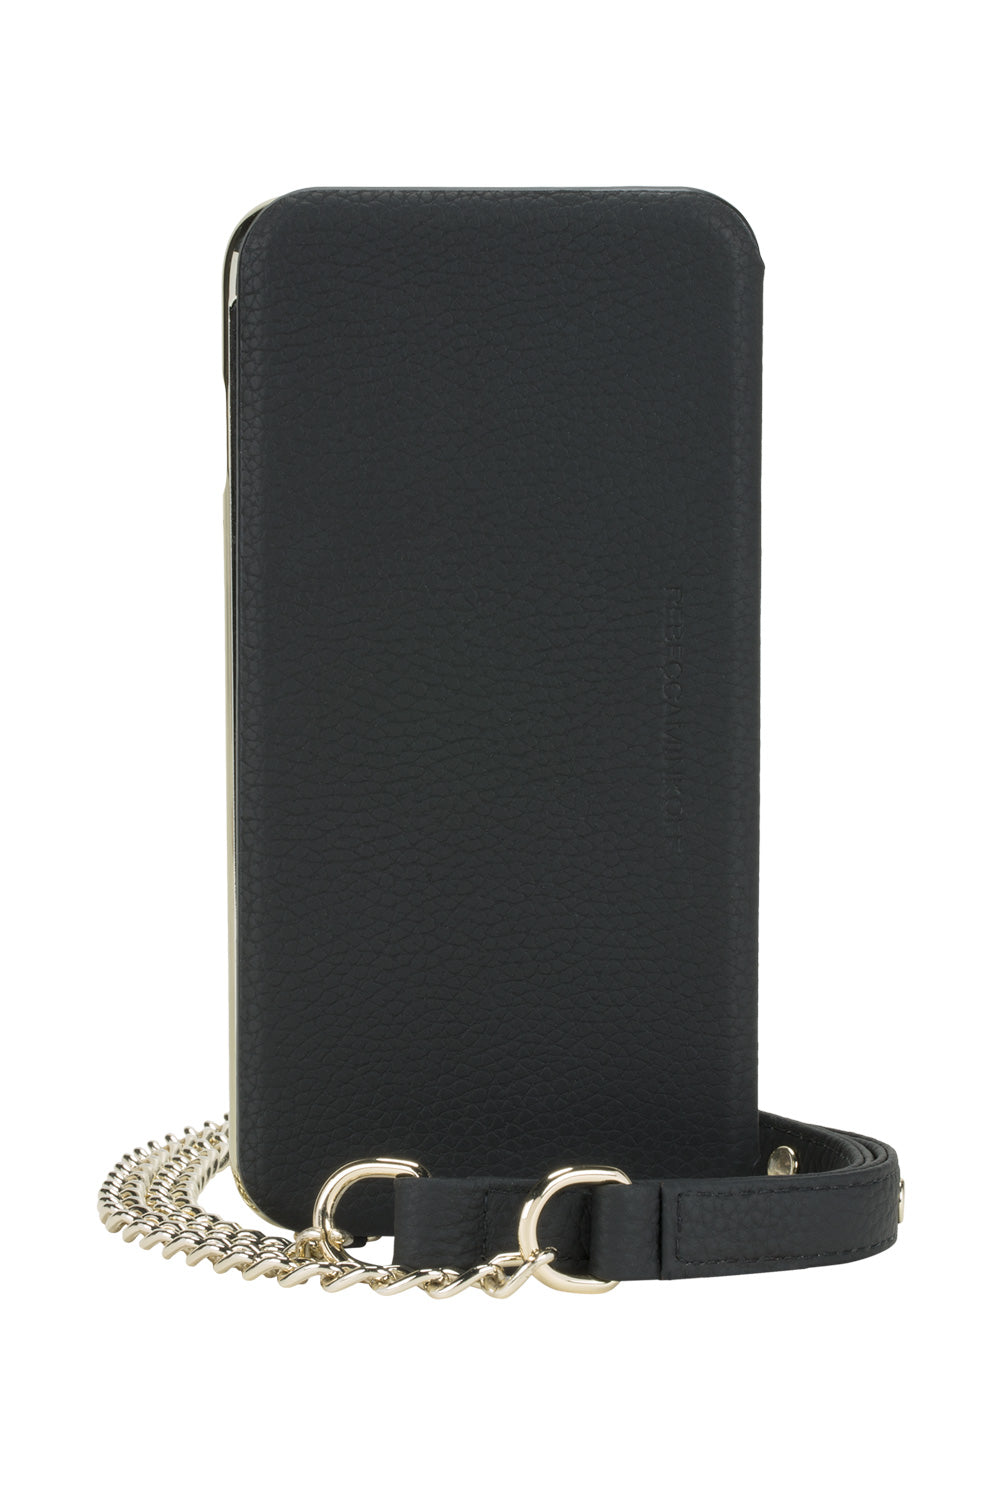 in stock 6d504 c264e Mirrored Crossbody Case For iPhone XS & iPhone X